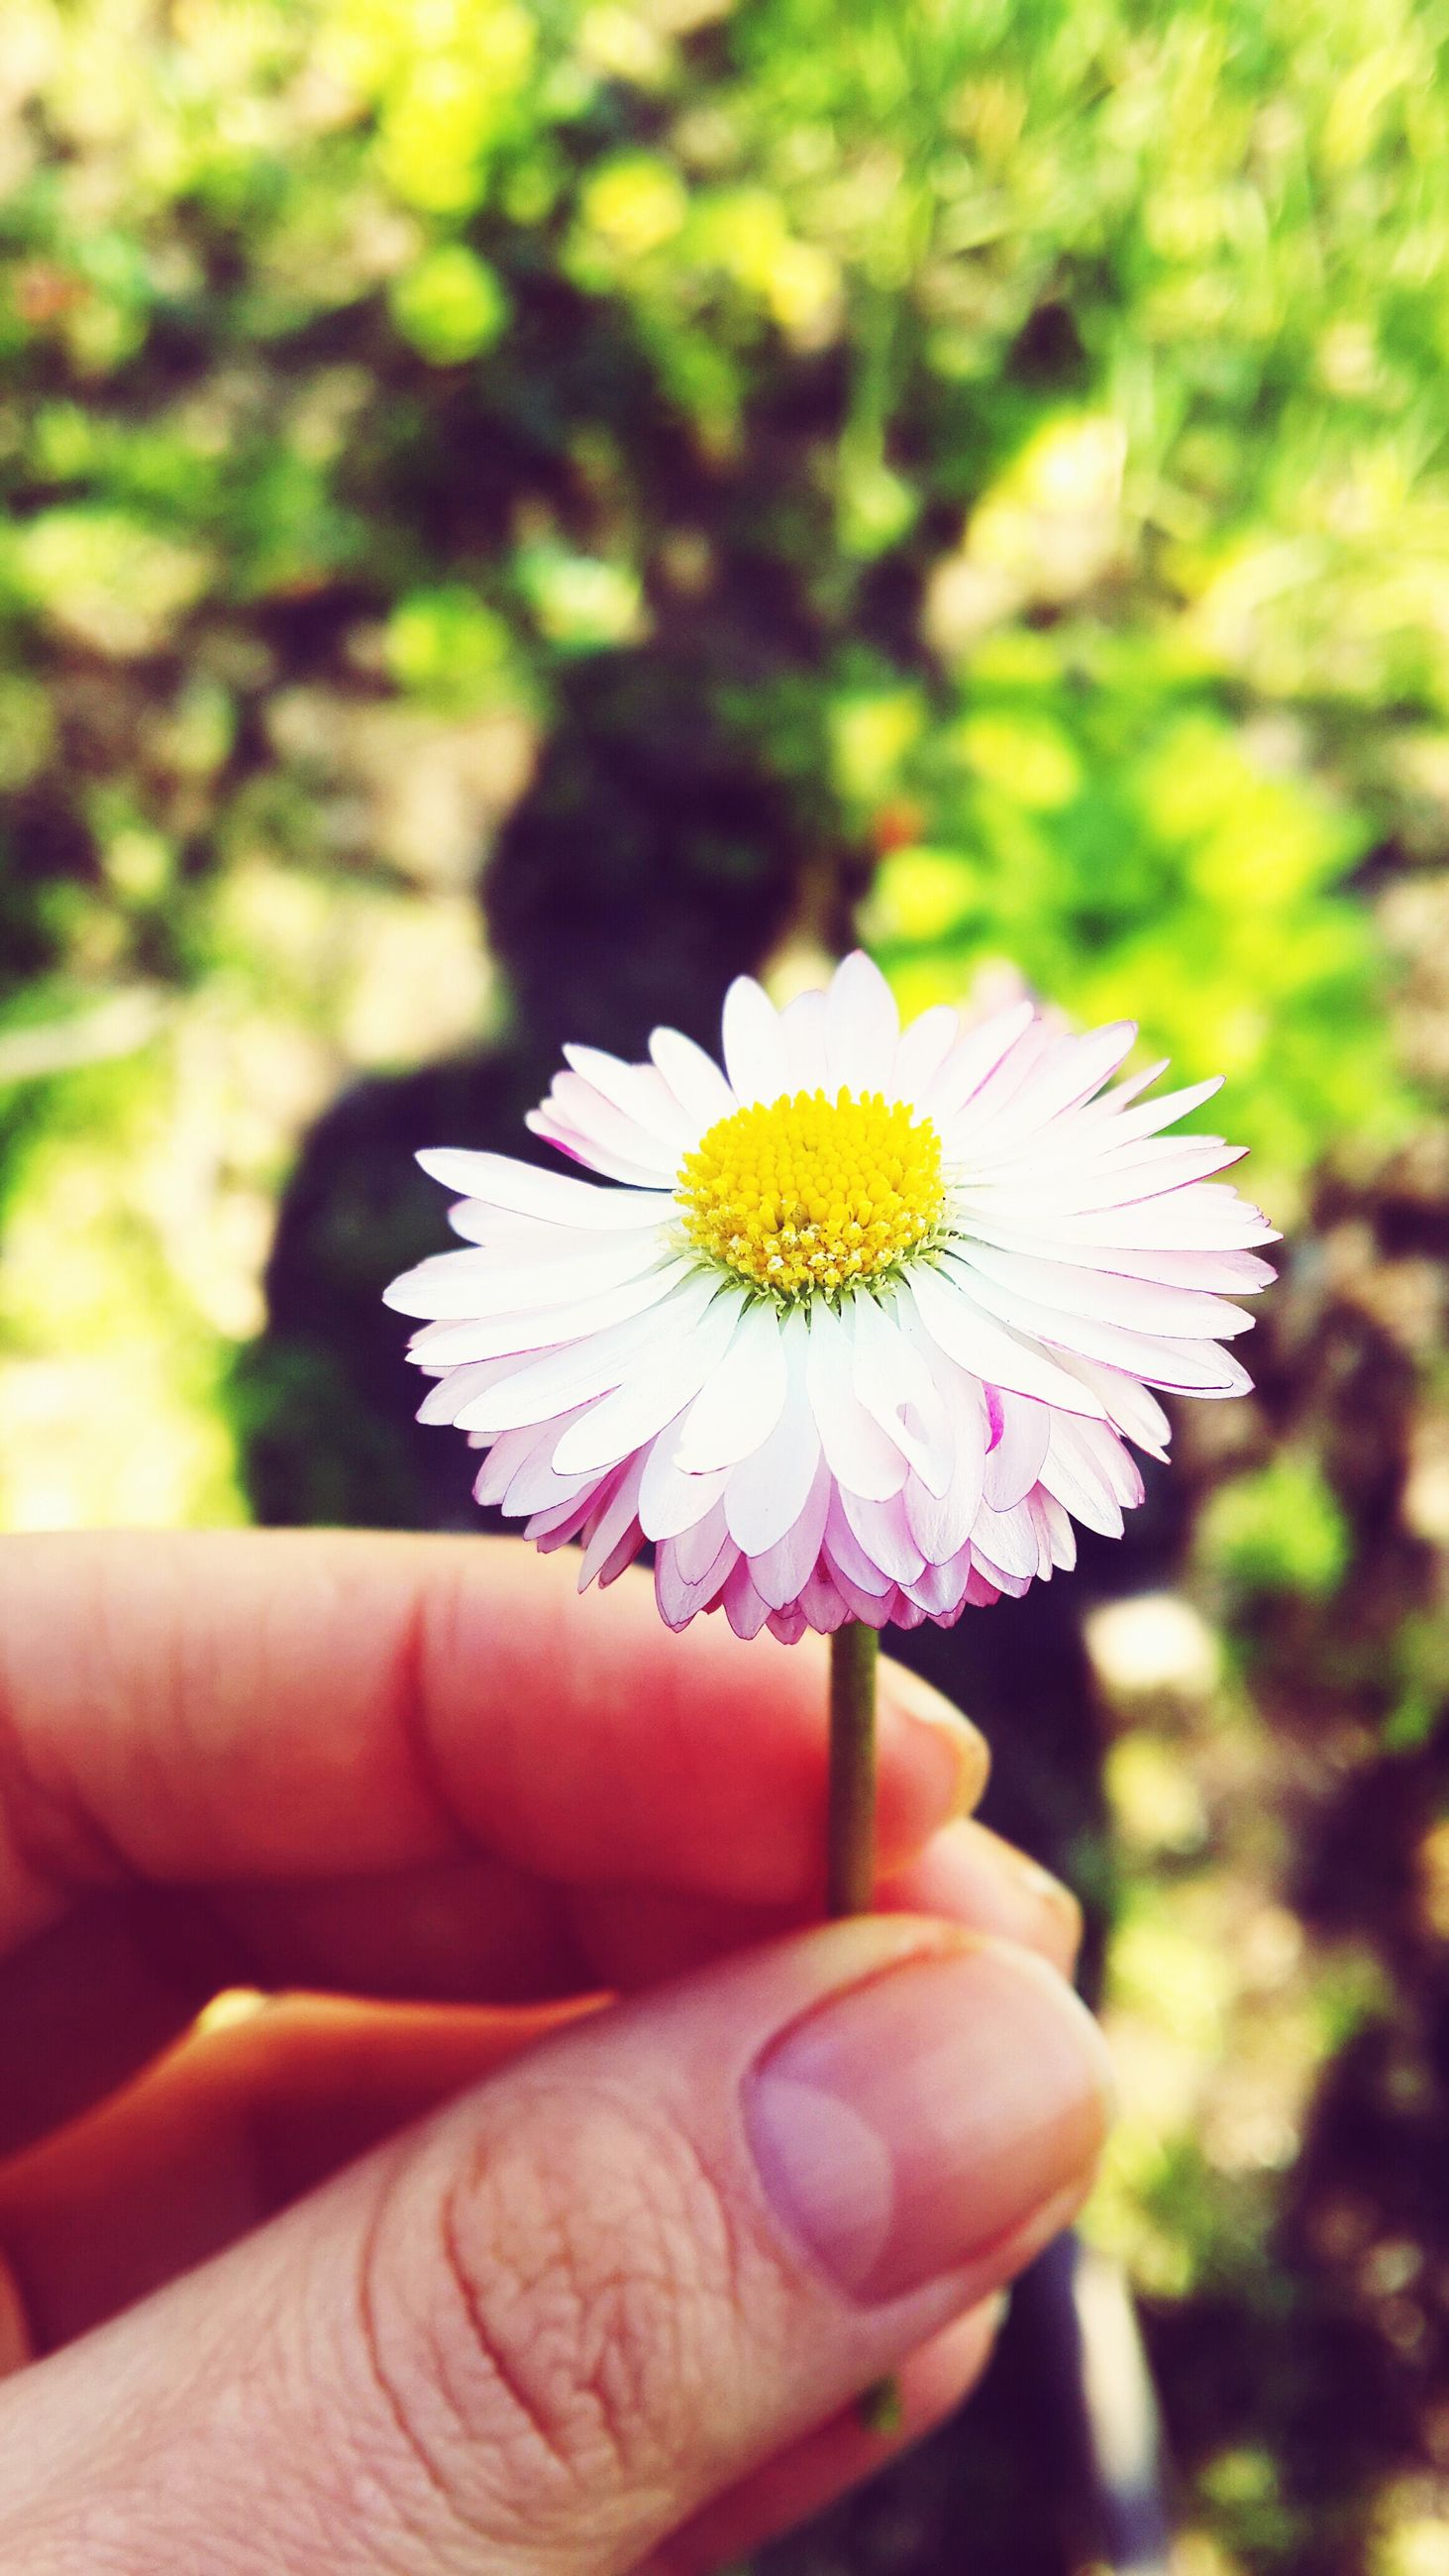 flower, person, holding, petal, flower head, fragility, single flower, part of, focus on foreground, human finger, freshness, unrecognizable person, cropped, personal perspective, pollen, white color, close-up